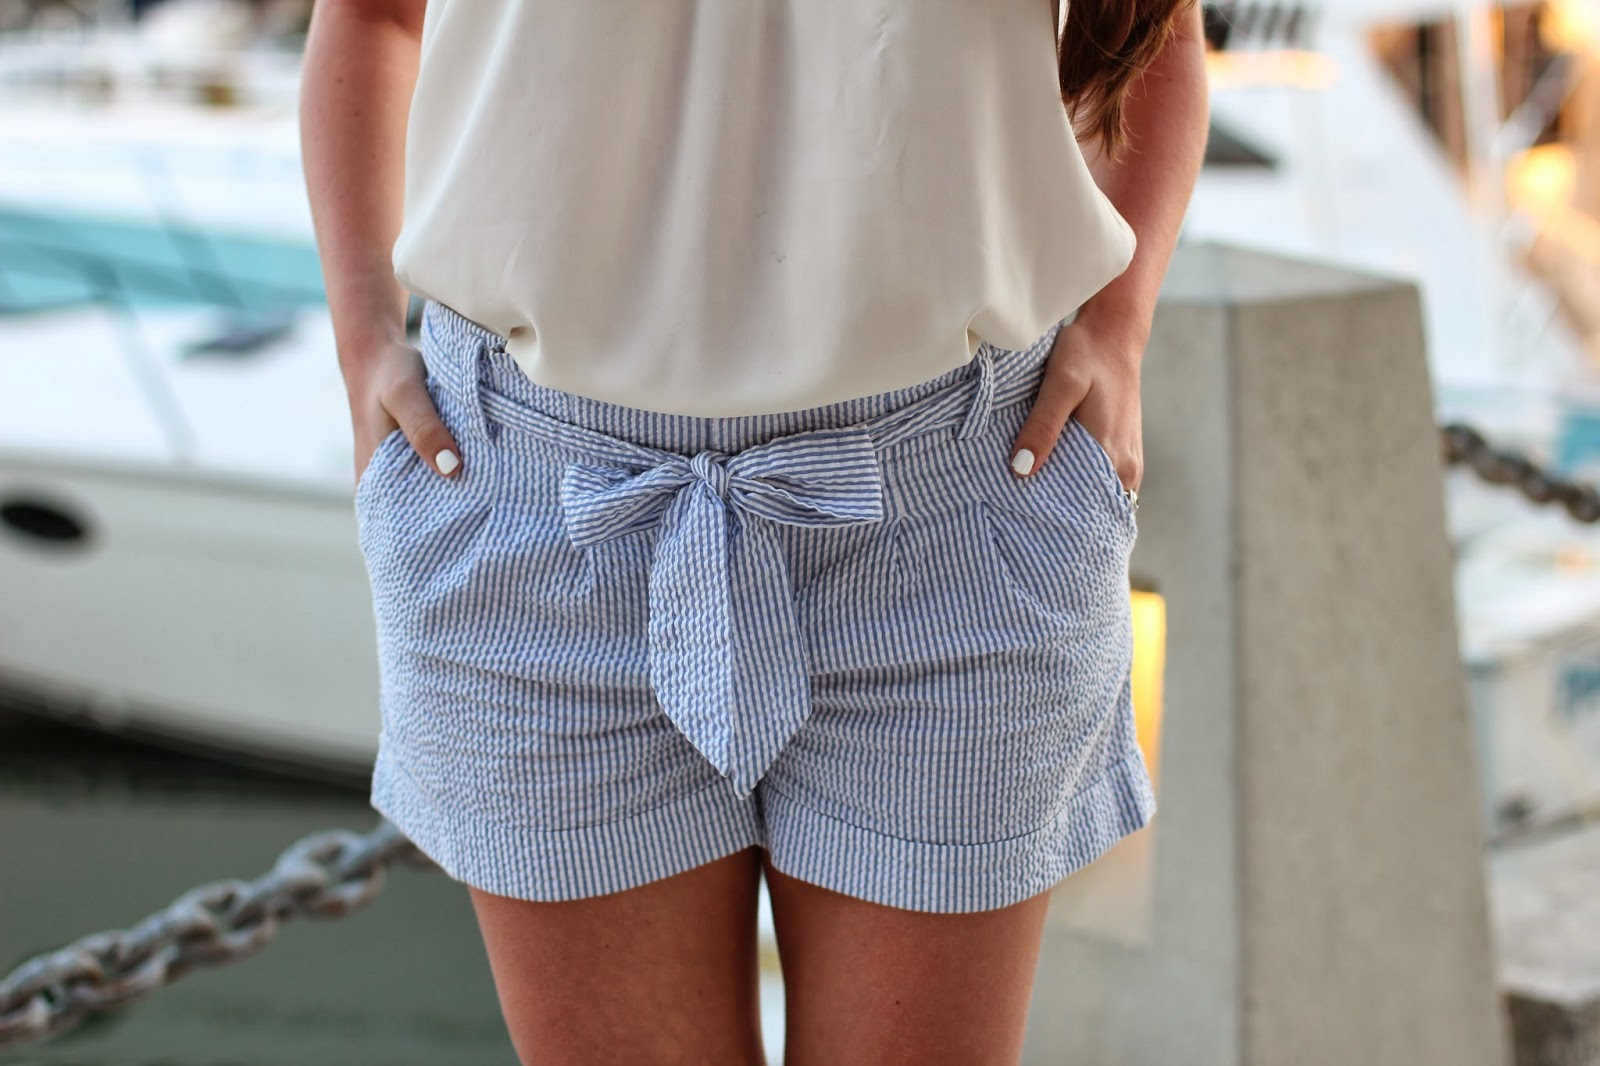 seersucker bow shorts, seersucker shorts, womens seersucker shorts, bow shorts